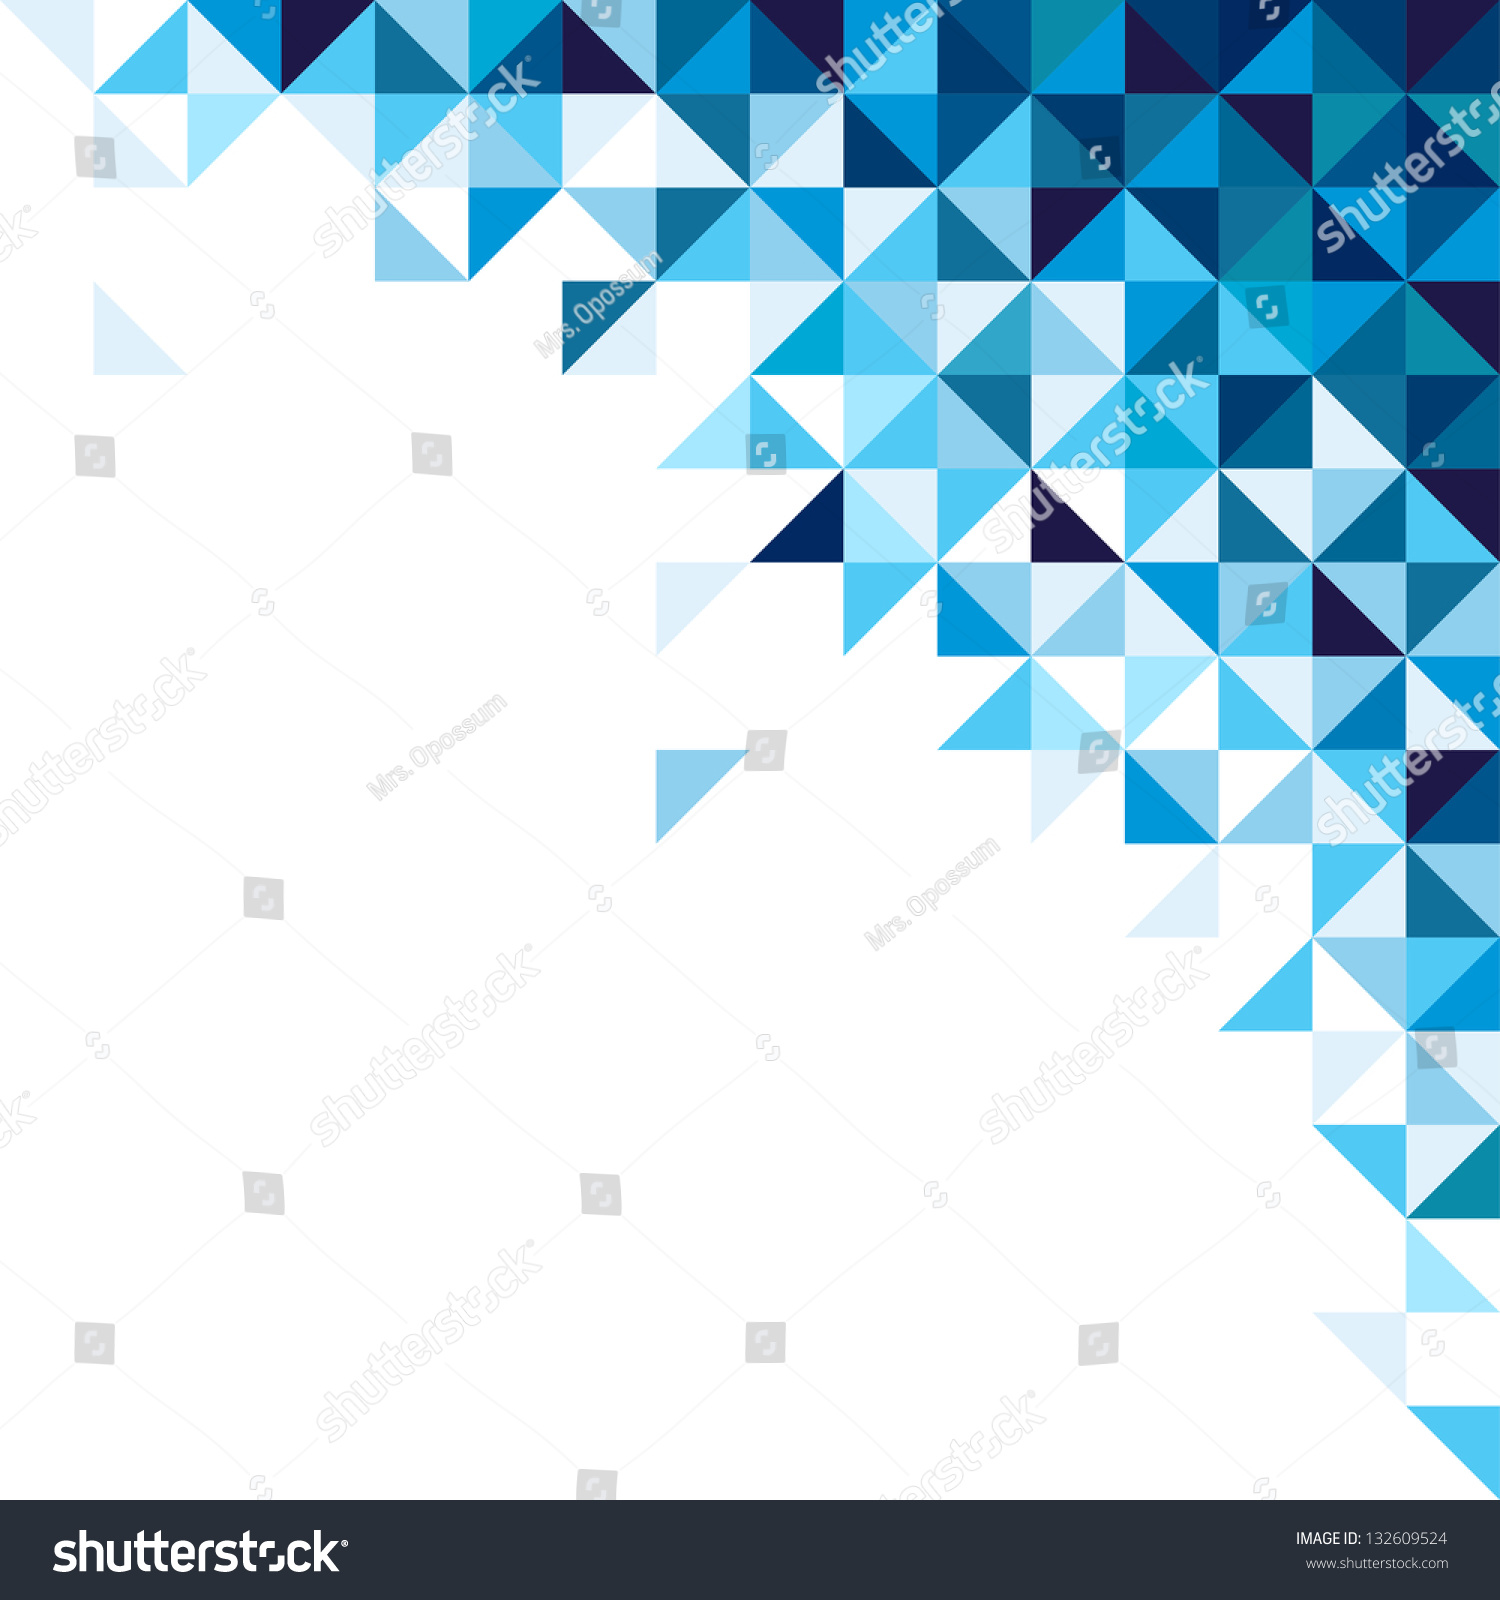 Abstract Geometric Background Triangle Square Blue Stock